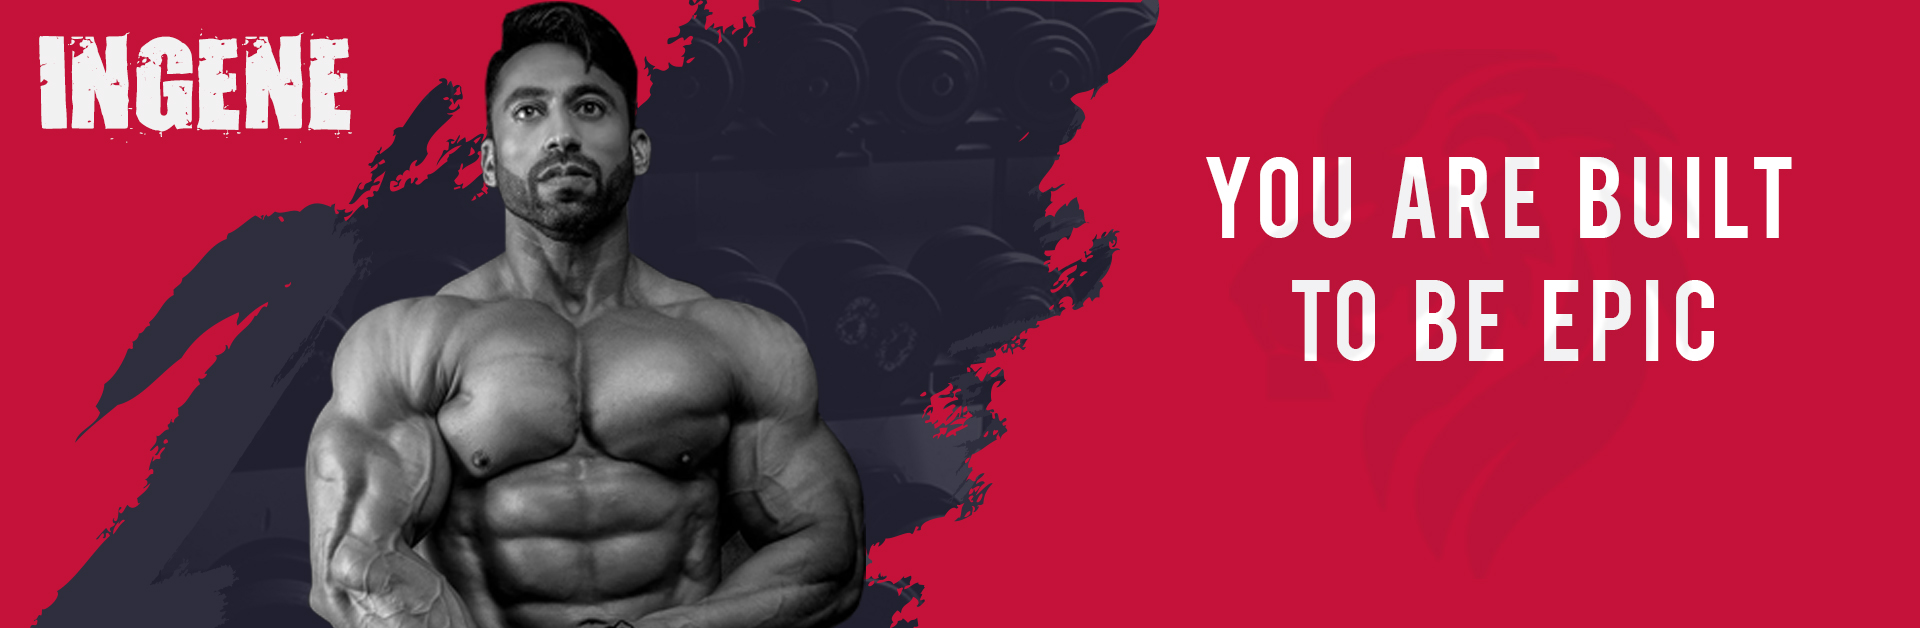 Brand Ambassador Bodybuilding Champion Kamal Goswami - InGene Fitness - You are built to be epic